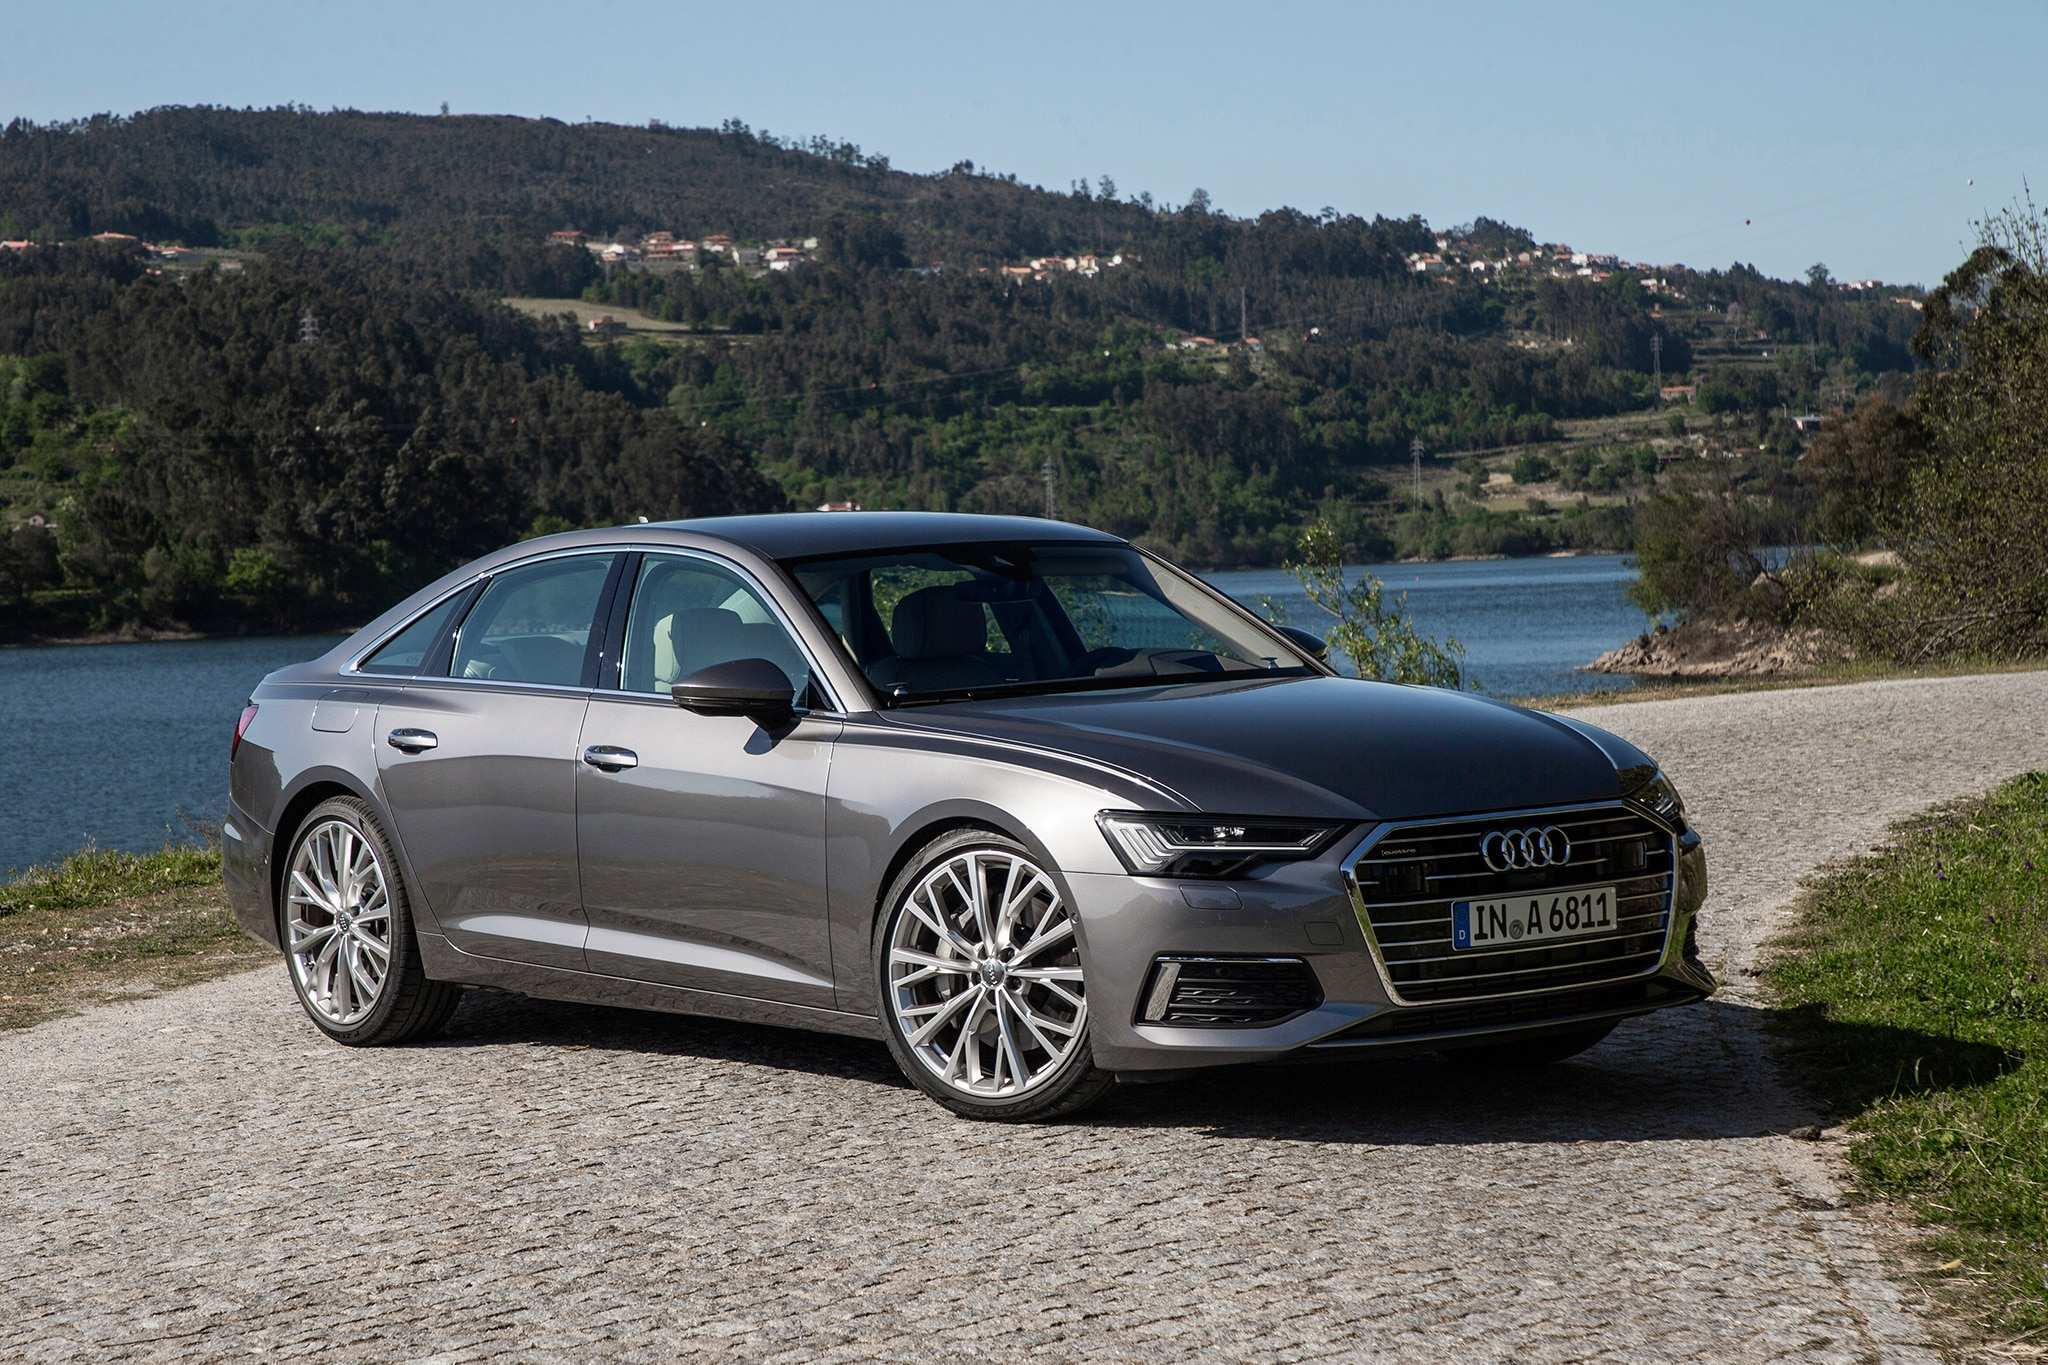 92 A 2019 Audi A6 Specs Price And Review